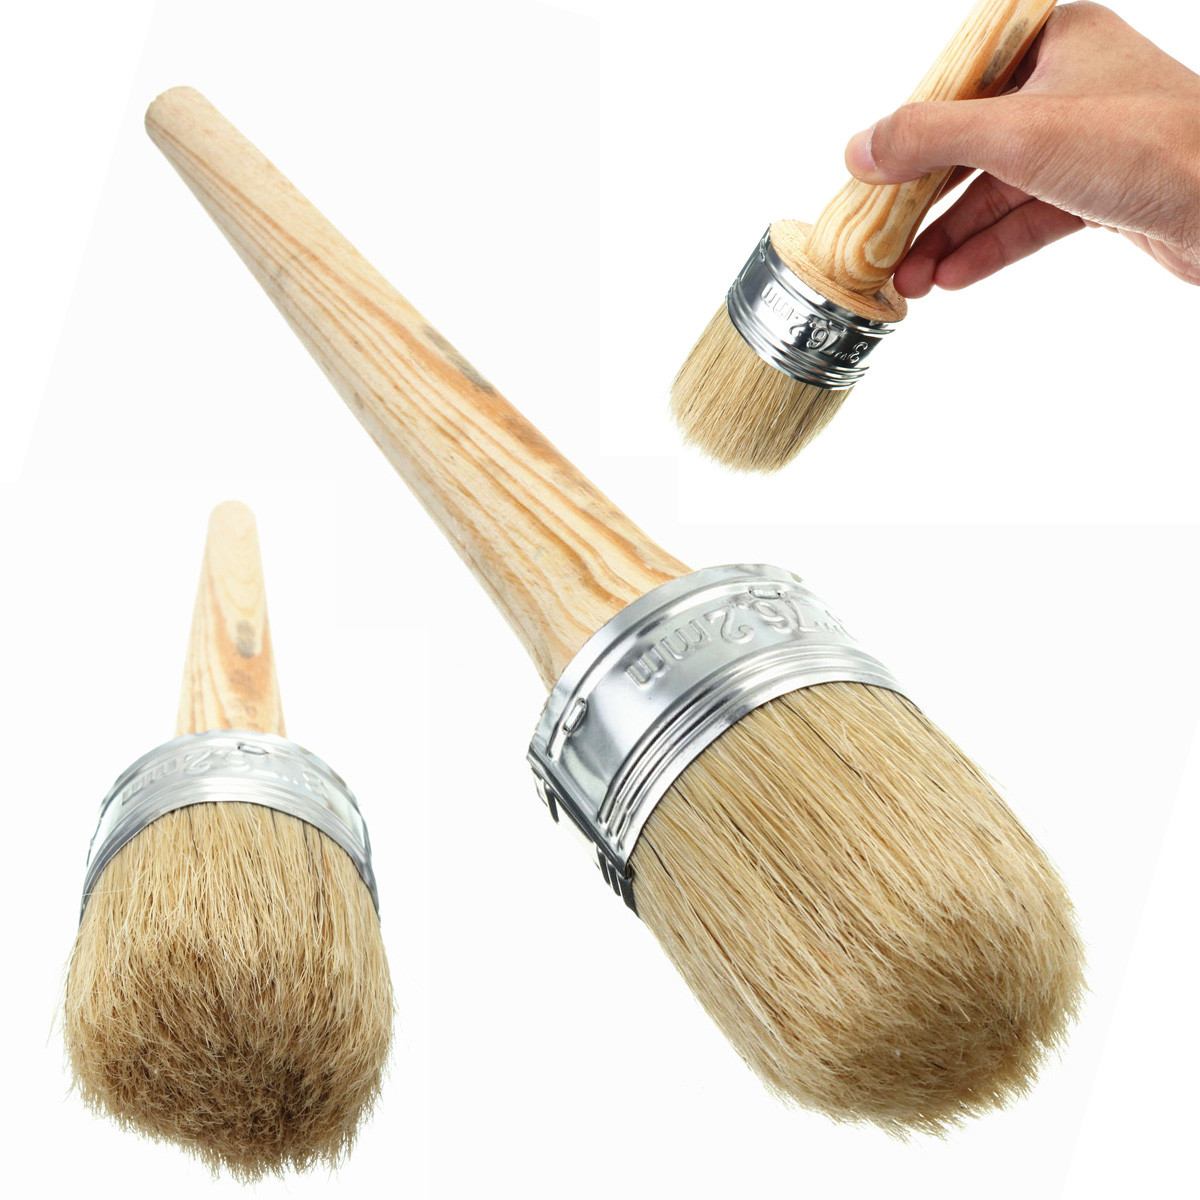 Paint Brush 5 pcs Fine Brushes Set Advanced Bristles Decorating DIY